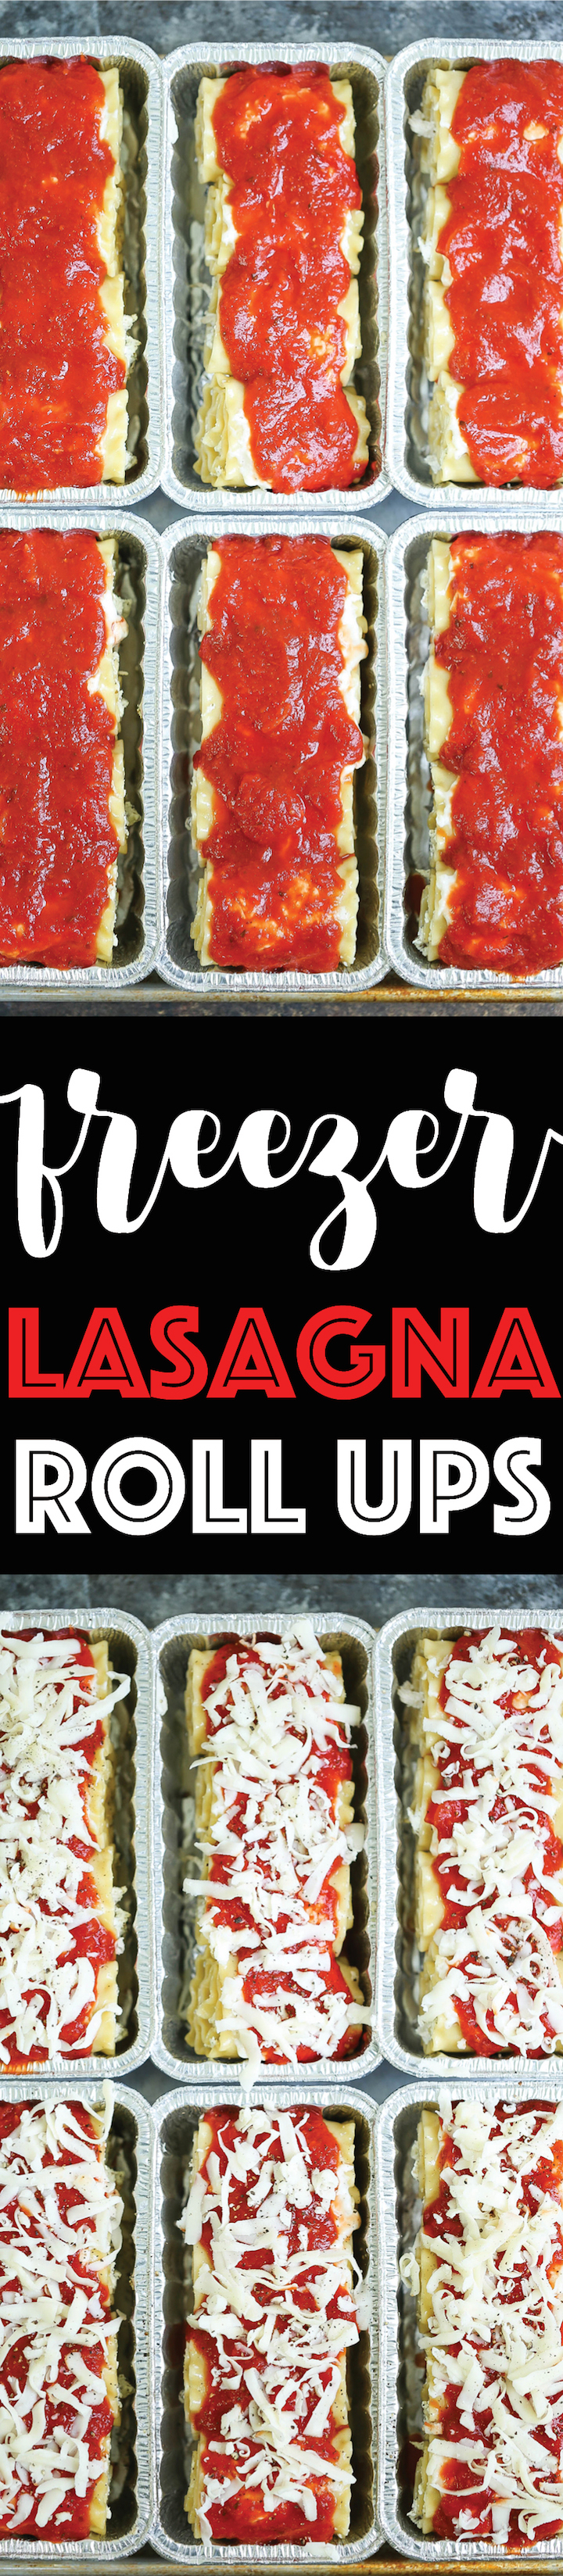 Freezer Lasagna Roll Ups - FREEZER-FRIENDLY!!!! Prep ahead of time, freeze and bake for the quickest, cheesiest and hearty lasagna on those busy nights!!!